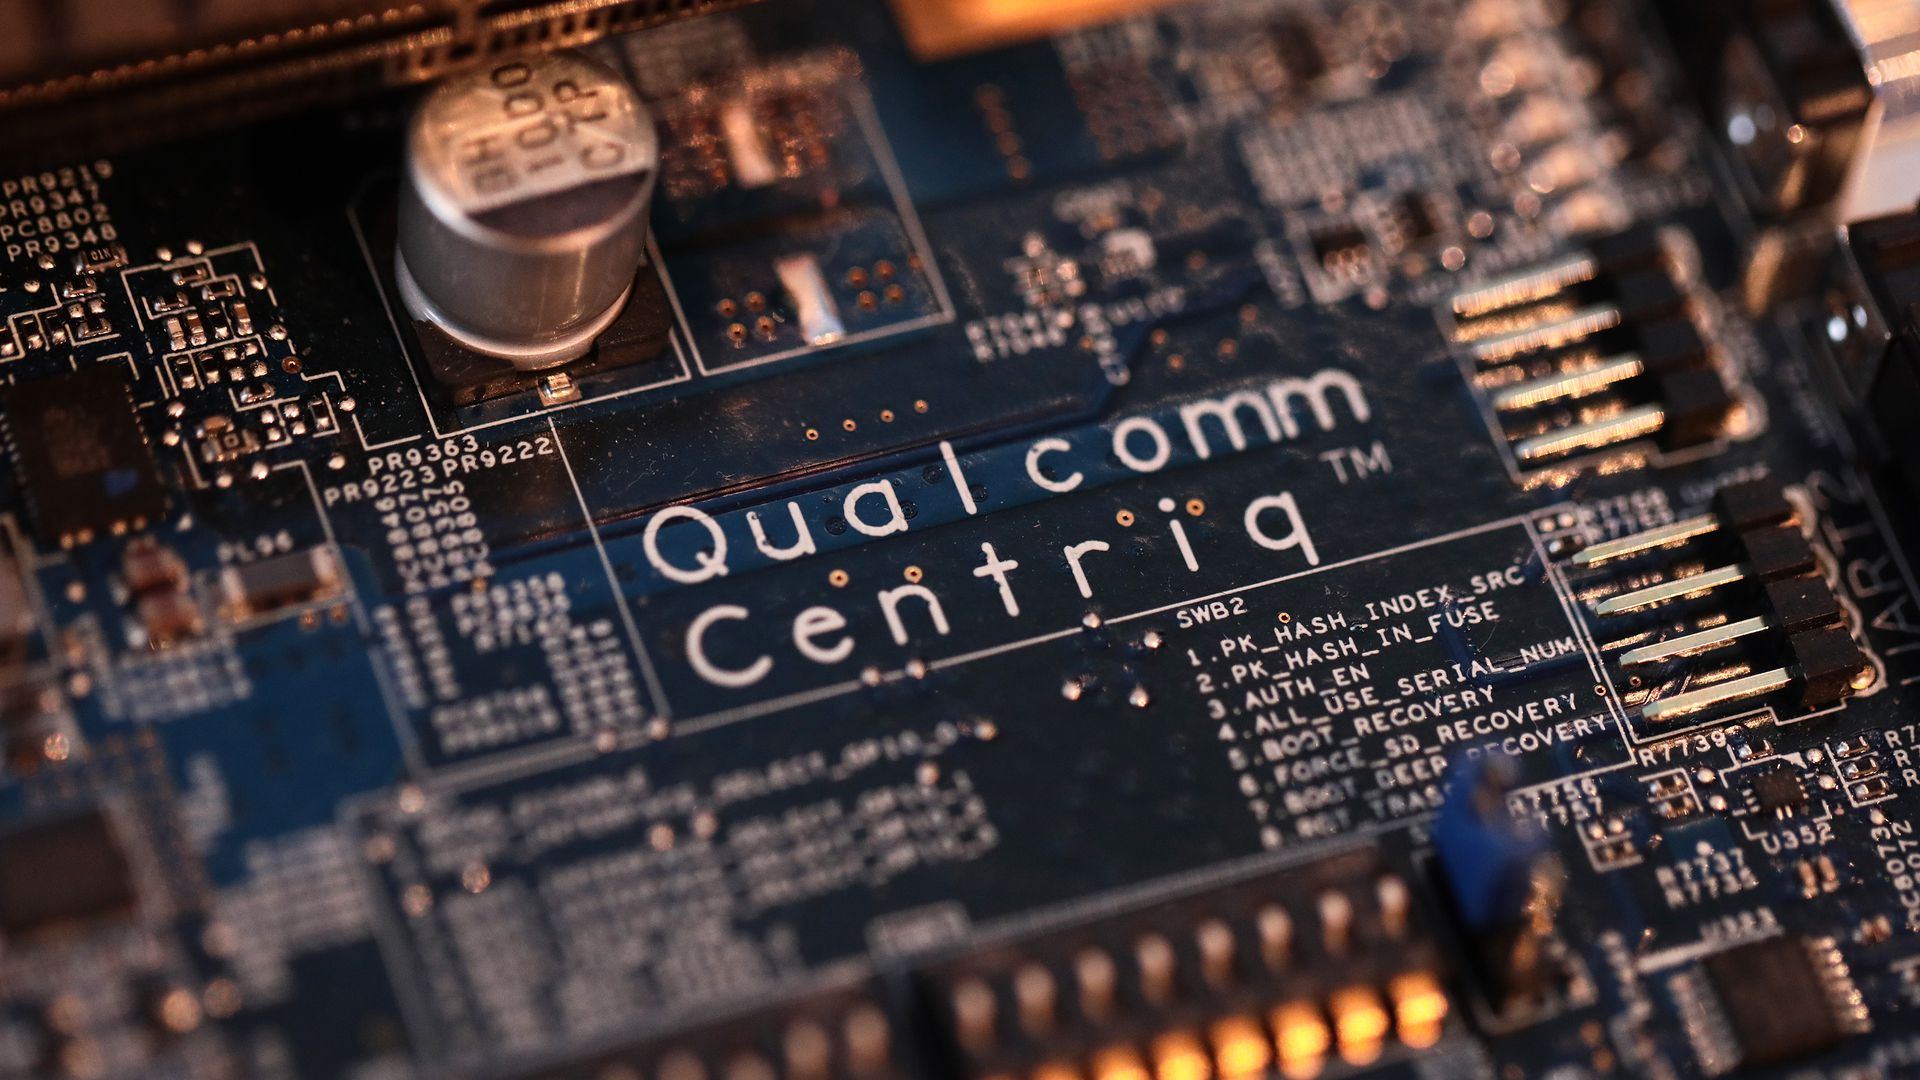 A close-up shot of a Qualcomm chip.